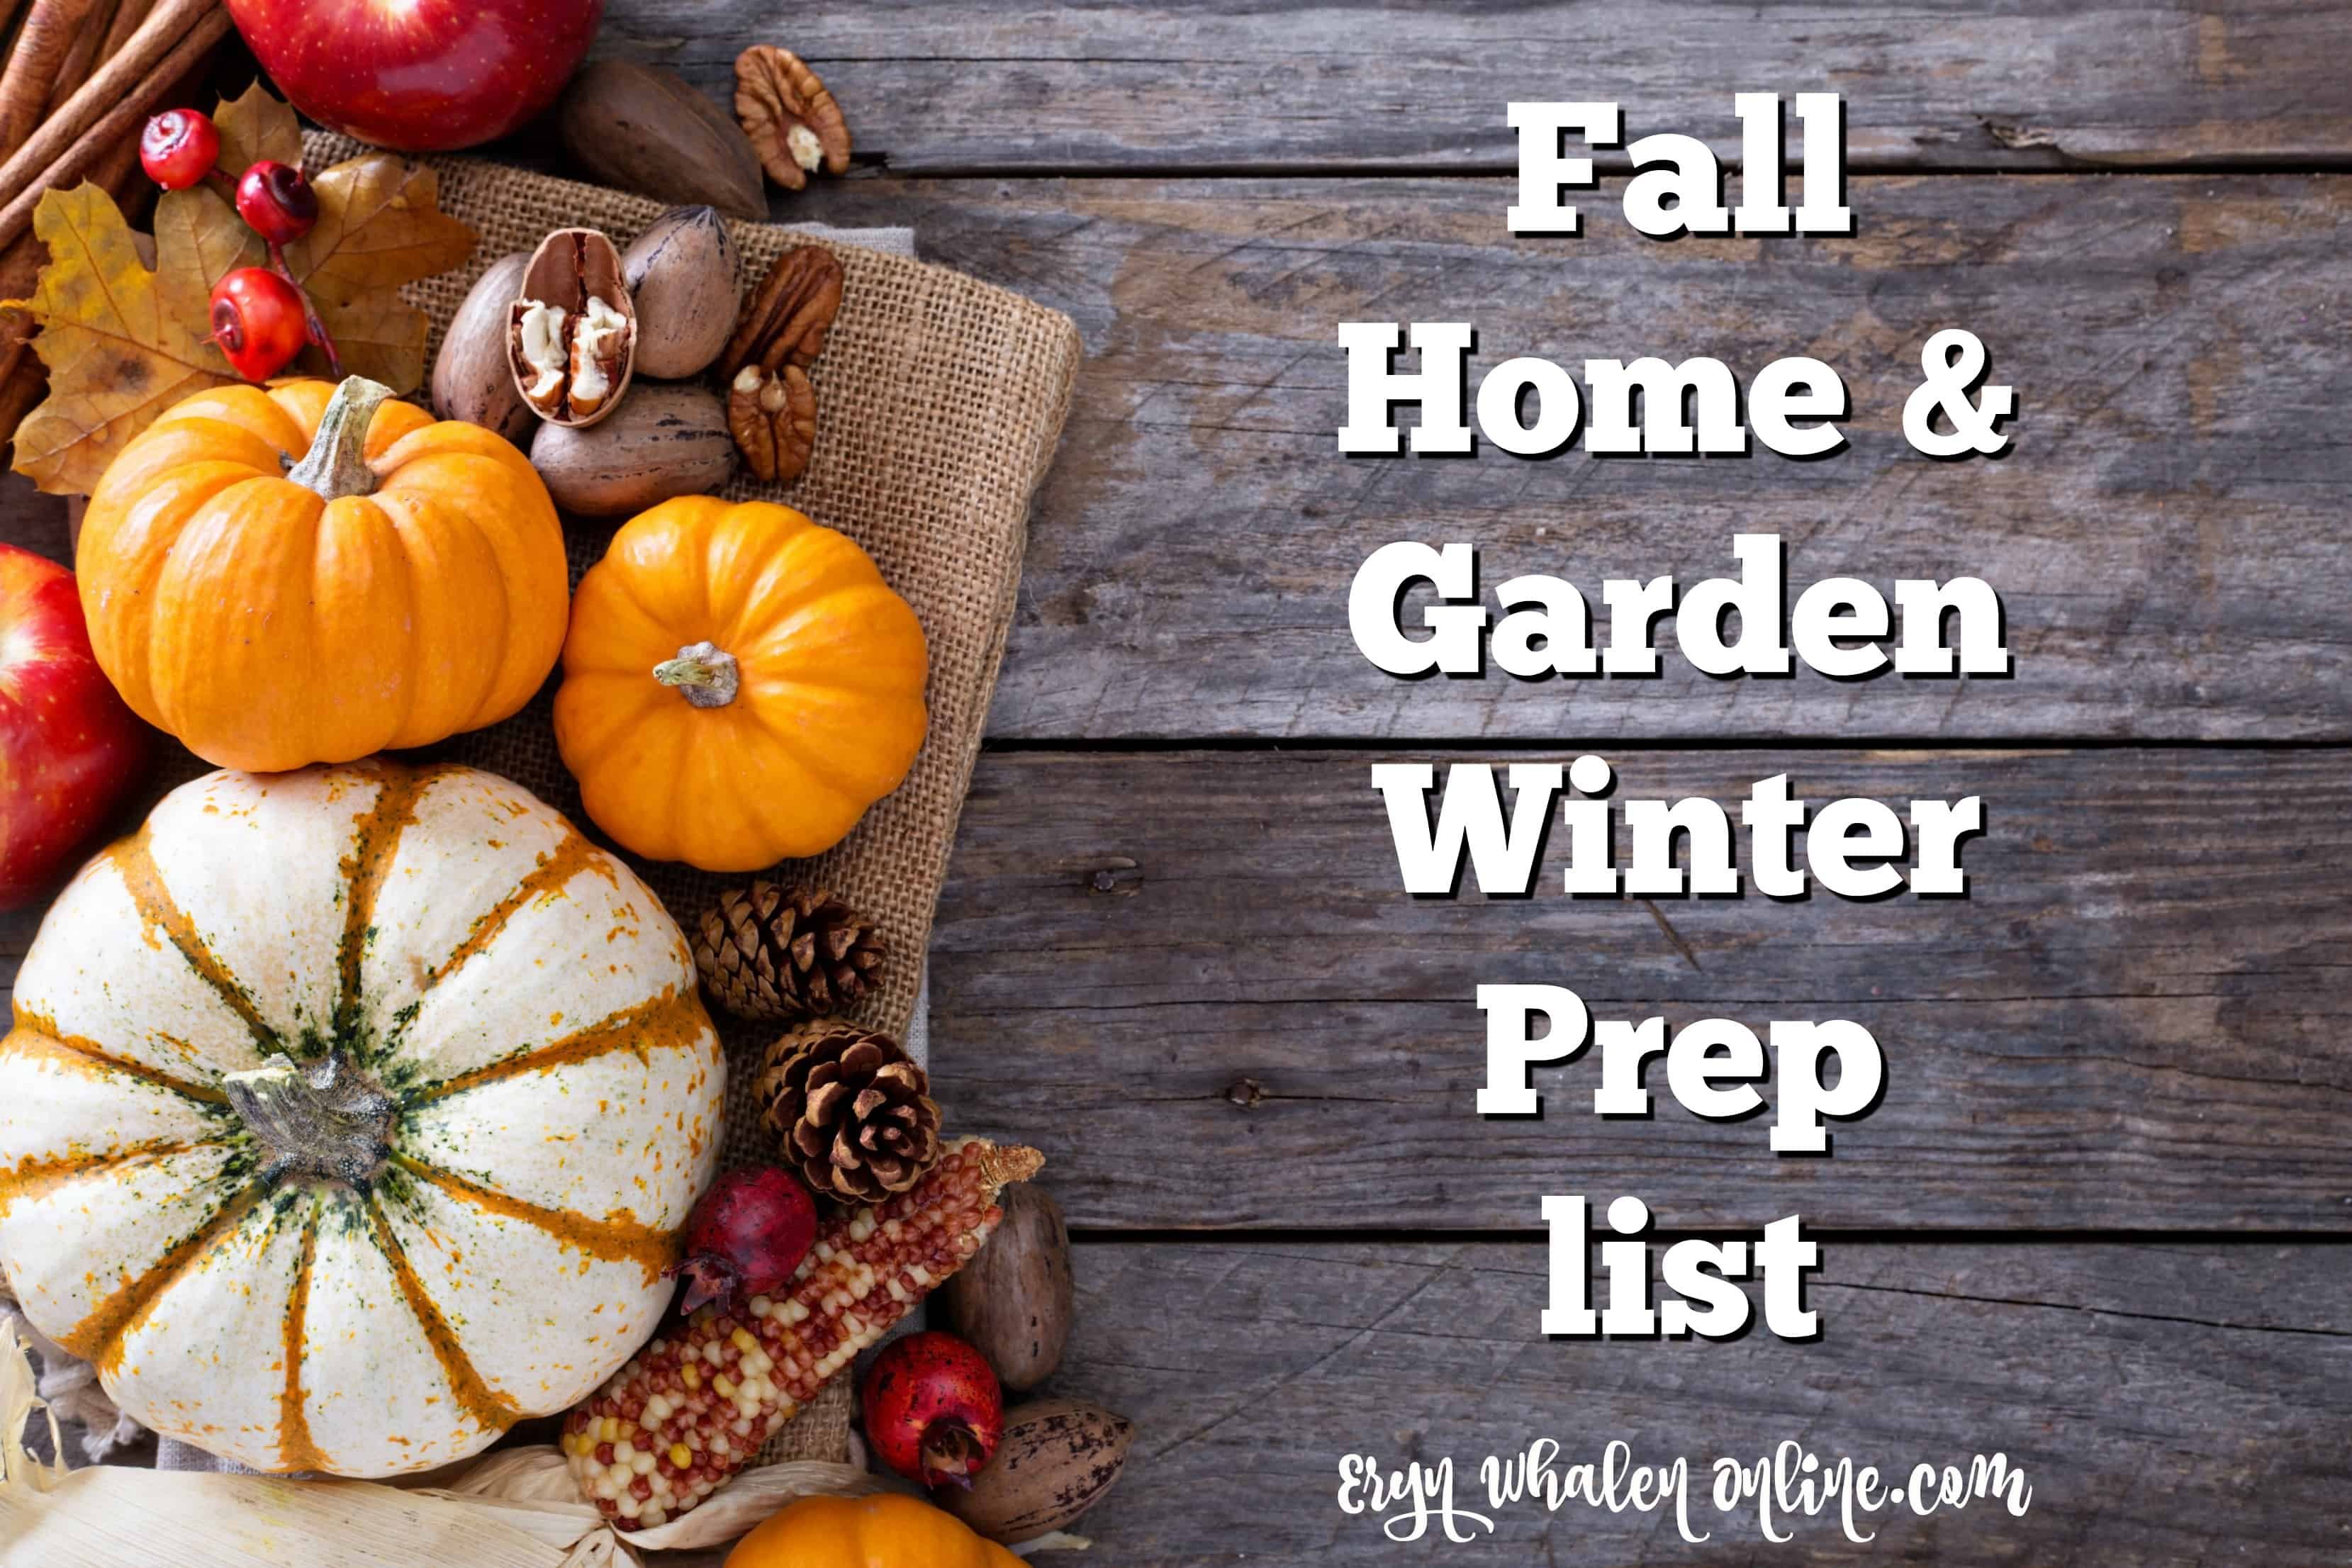 Fall Home Garden Winter Prep Checklist Eryn Whalen